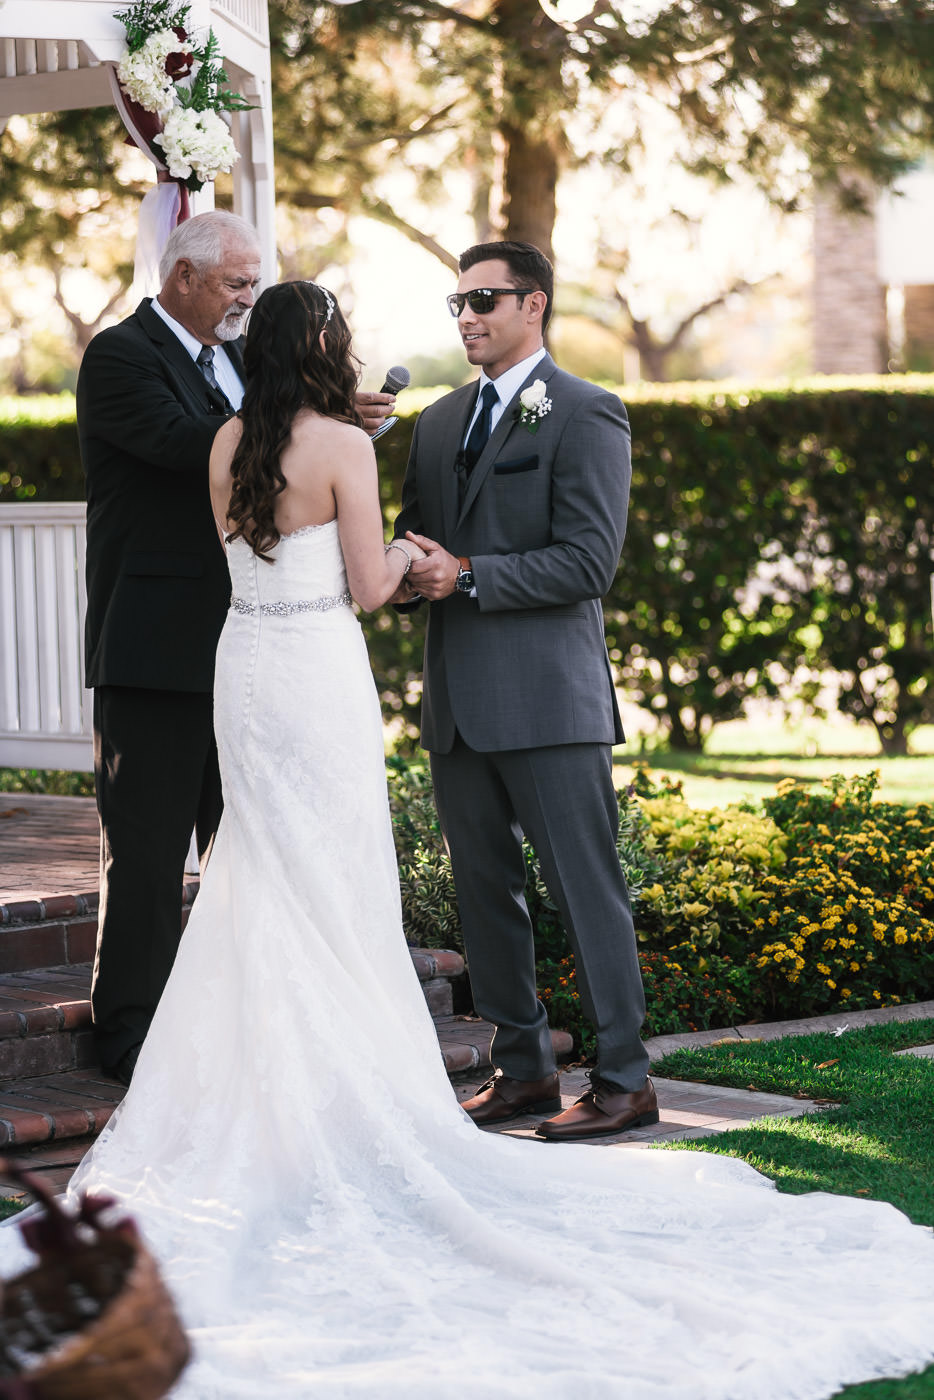 handsome groom says I do to tie the knot at their Alta Vista Wedding.